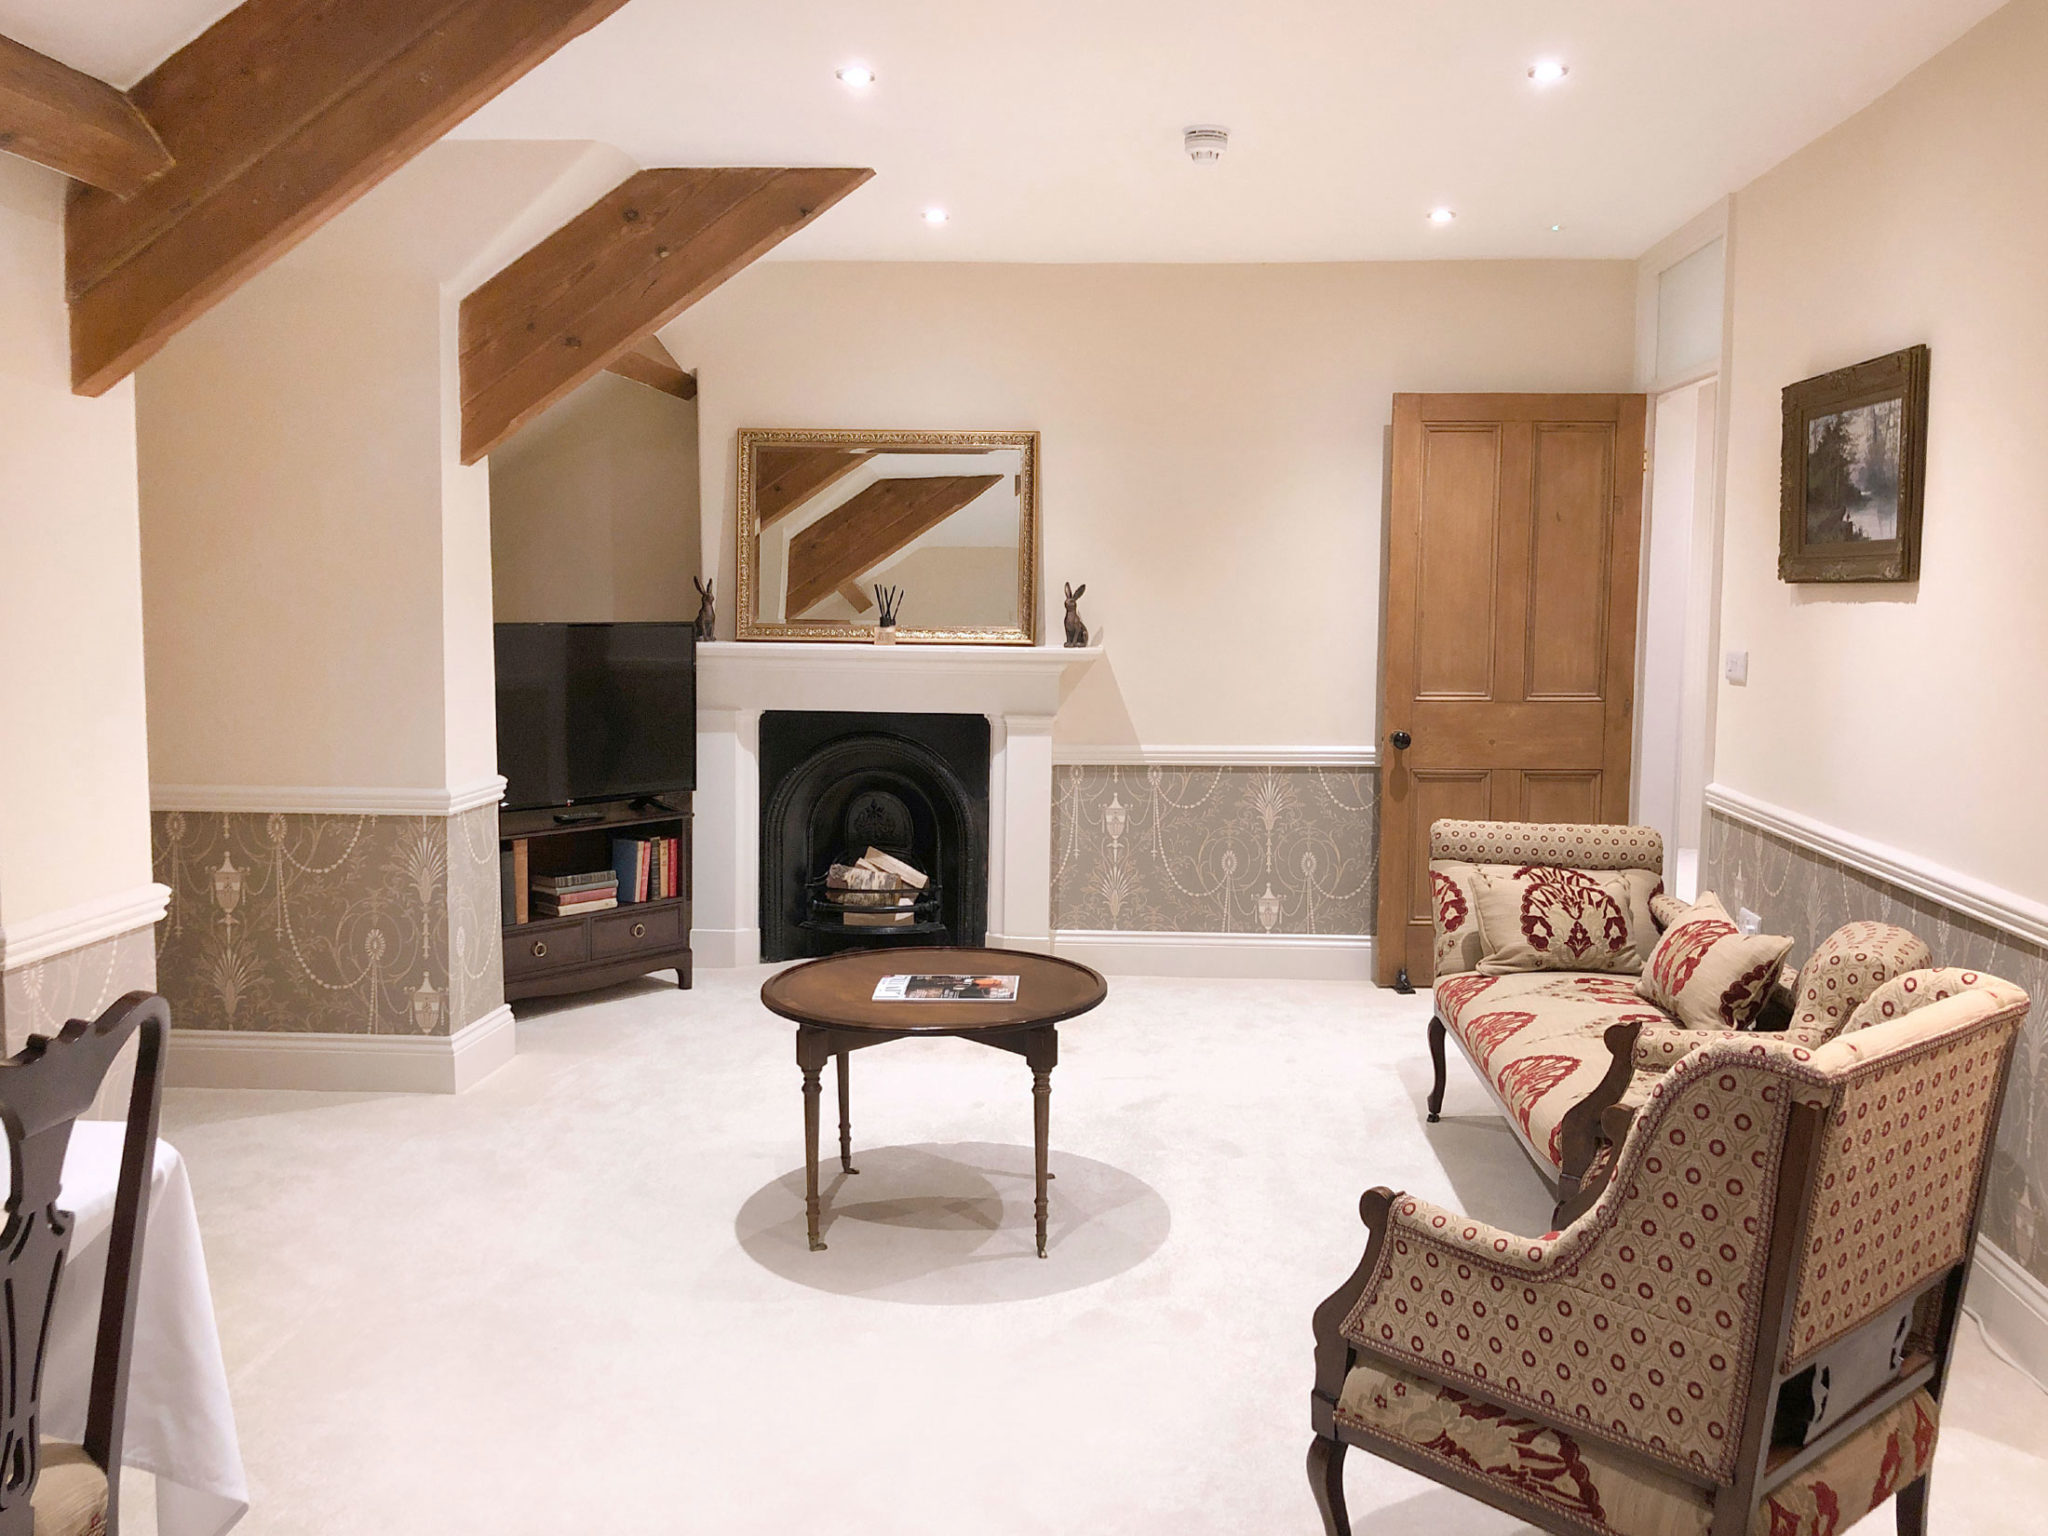 The Manor Suite